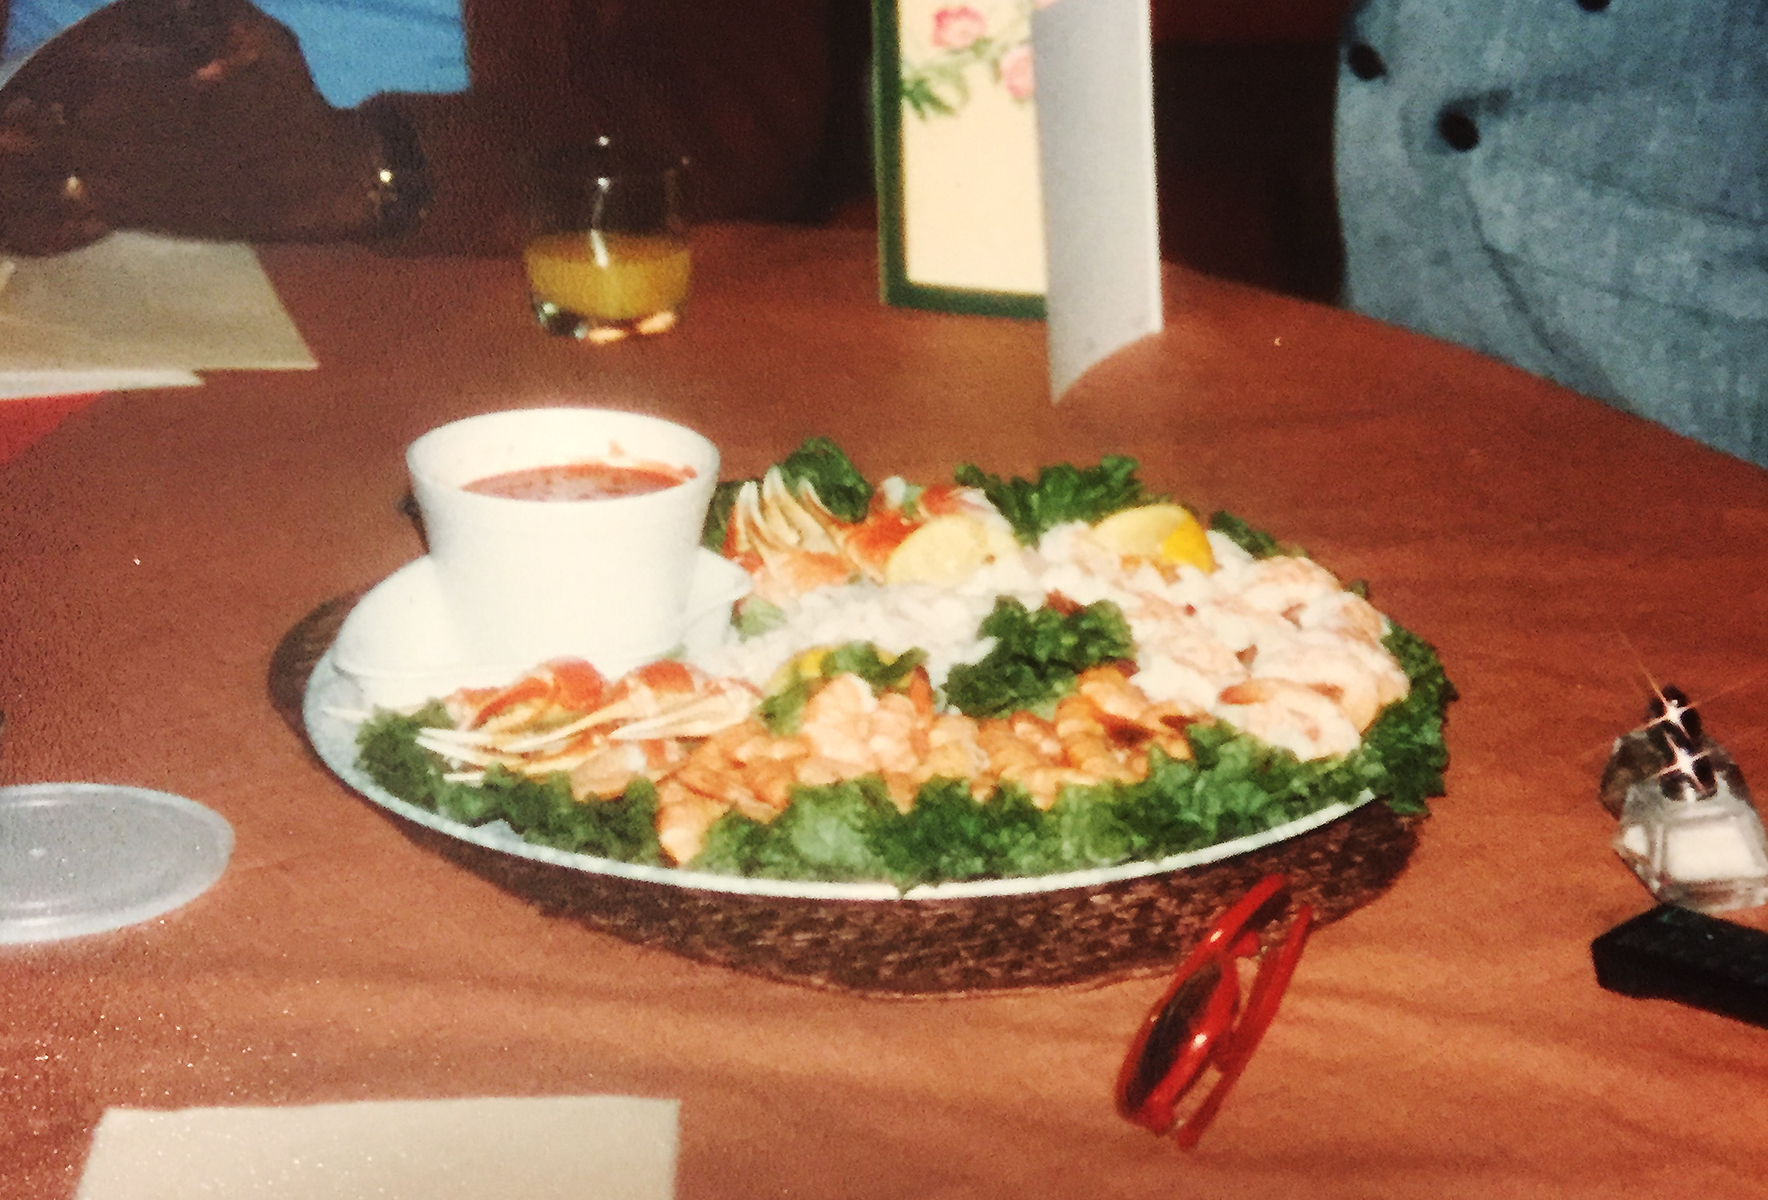 A seafood platter from Red Lobster at my grandparents' home, circa mid-1980s. Photos from the Nicholls & Gill families.